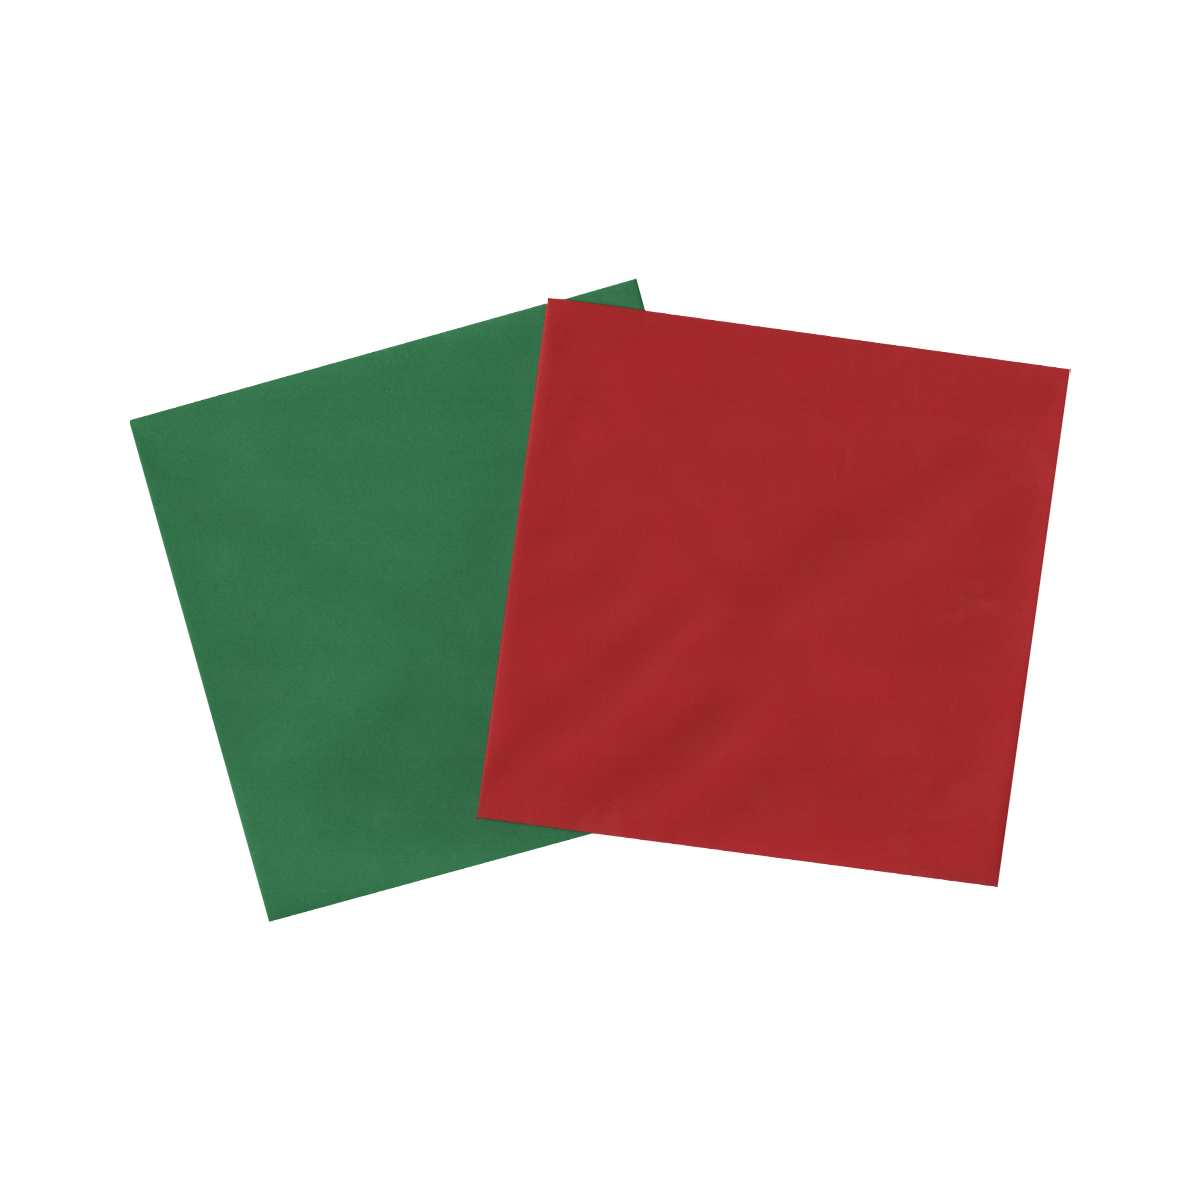 155mm SQUARE CHRISTMAS RED/GREEN ENVELOPES (PACK OF 20)